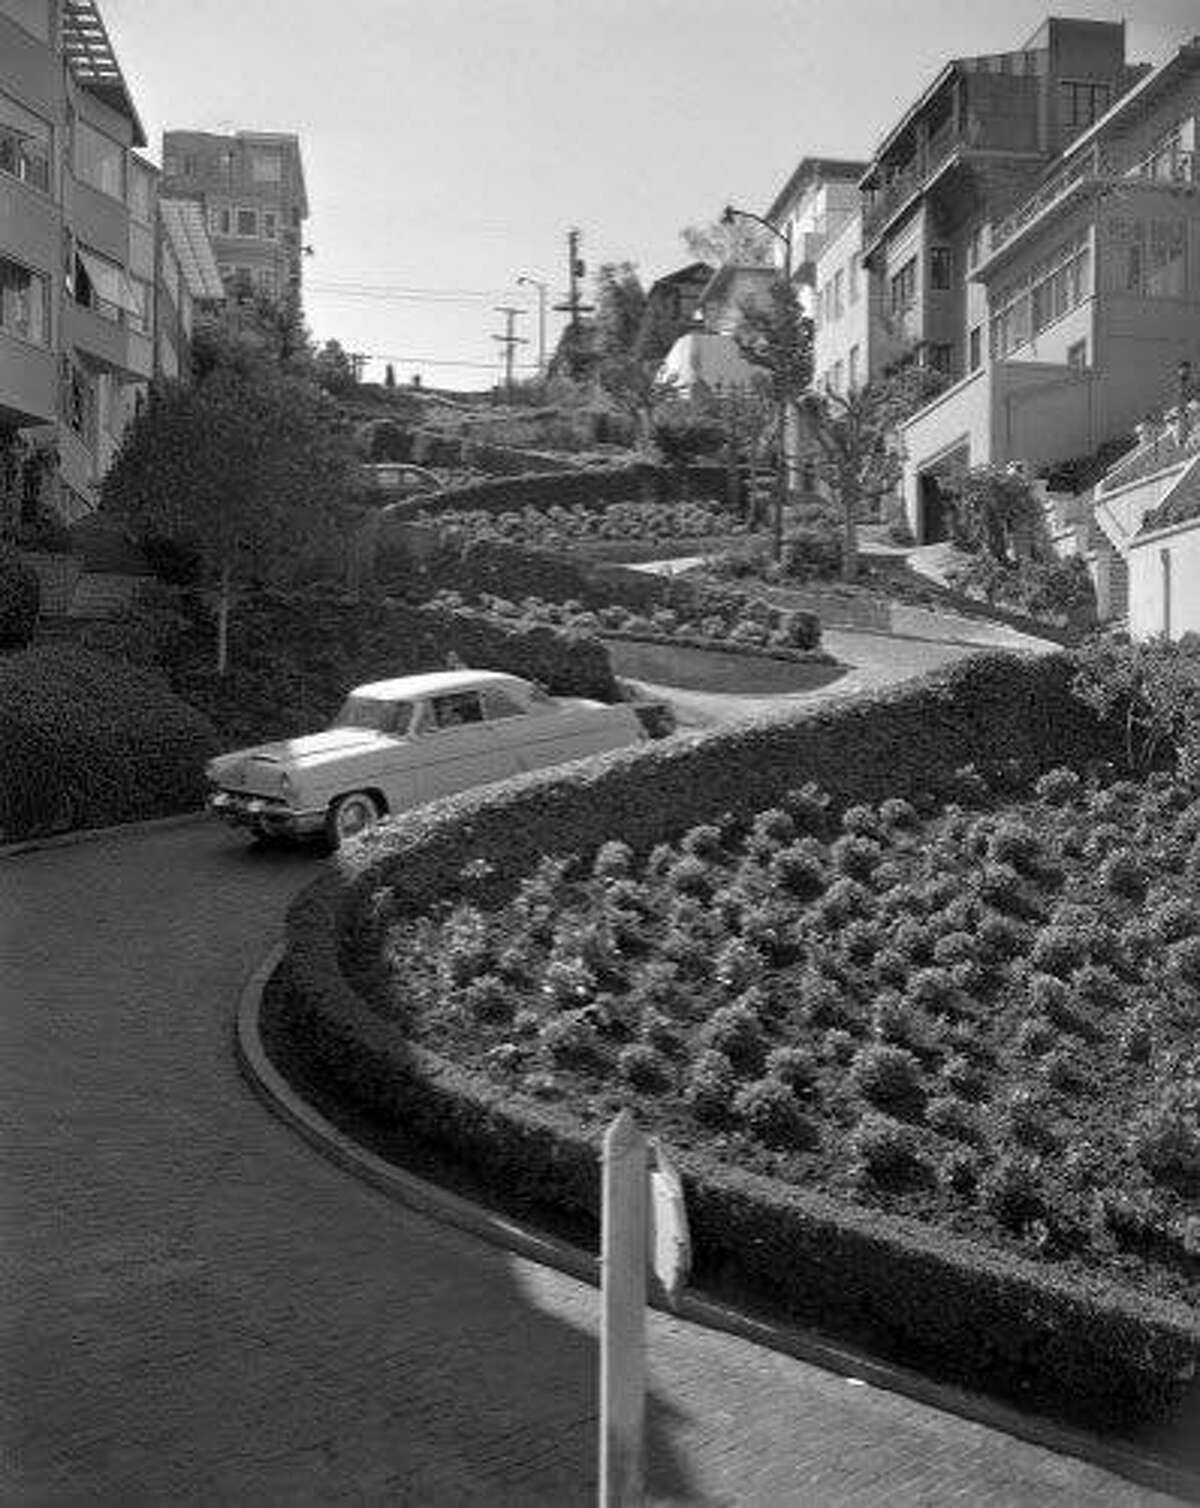 Aug. 10, 1955: A car travels down Lombard Street in San Francisco.